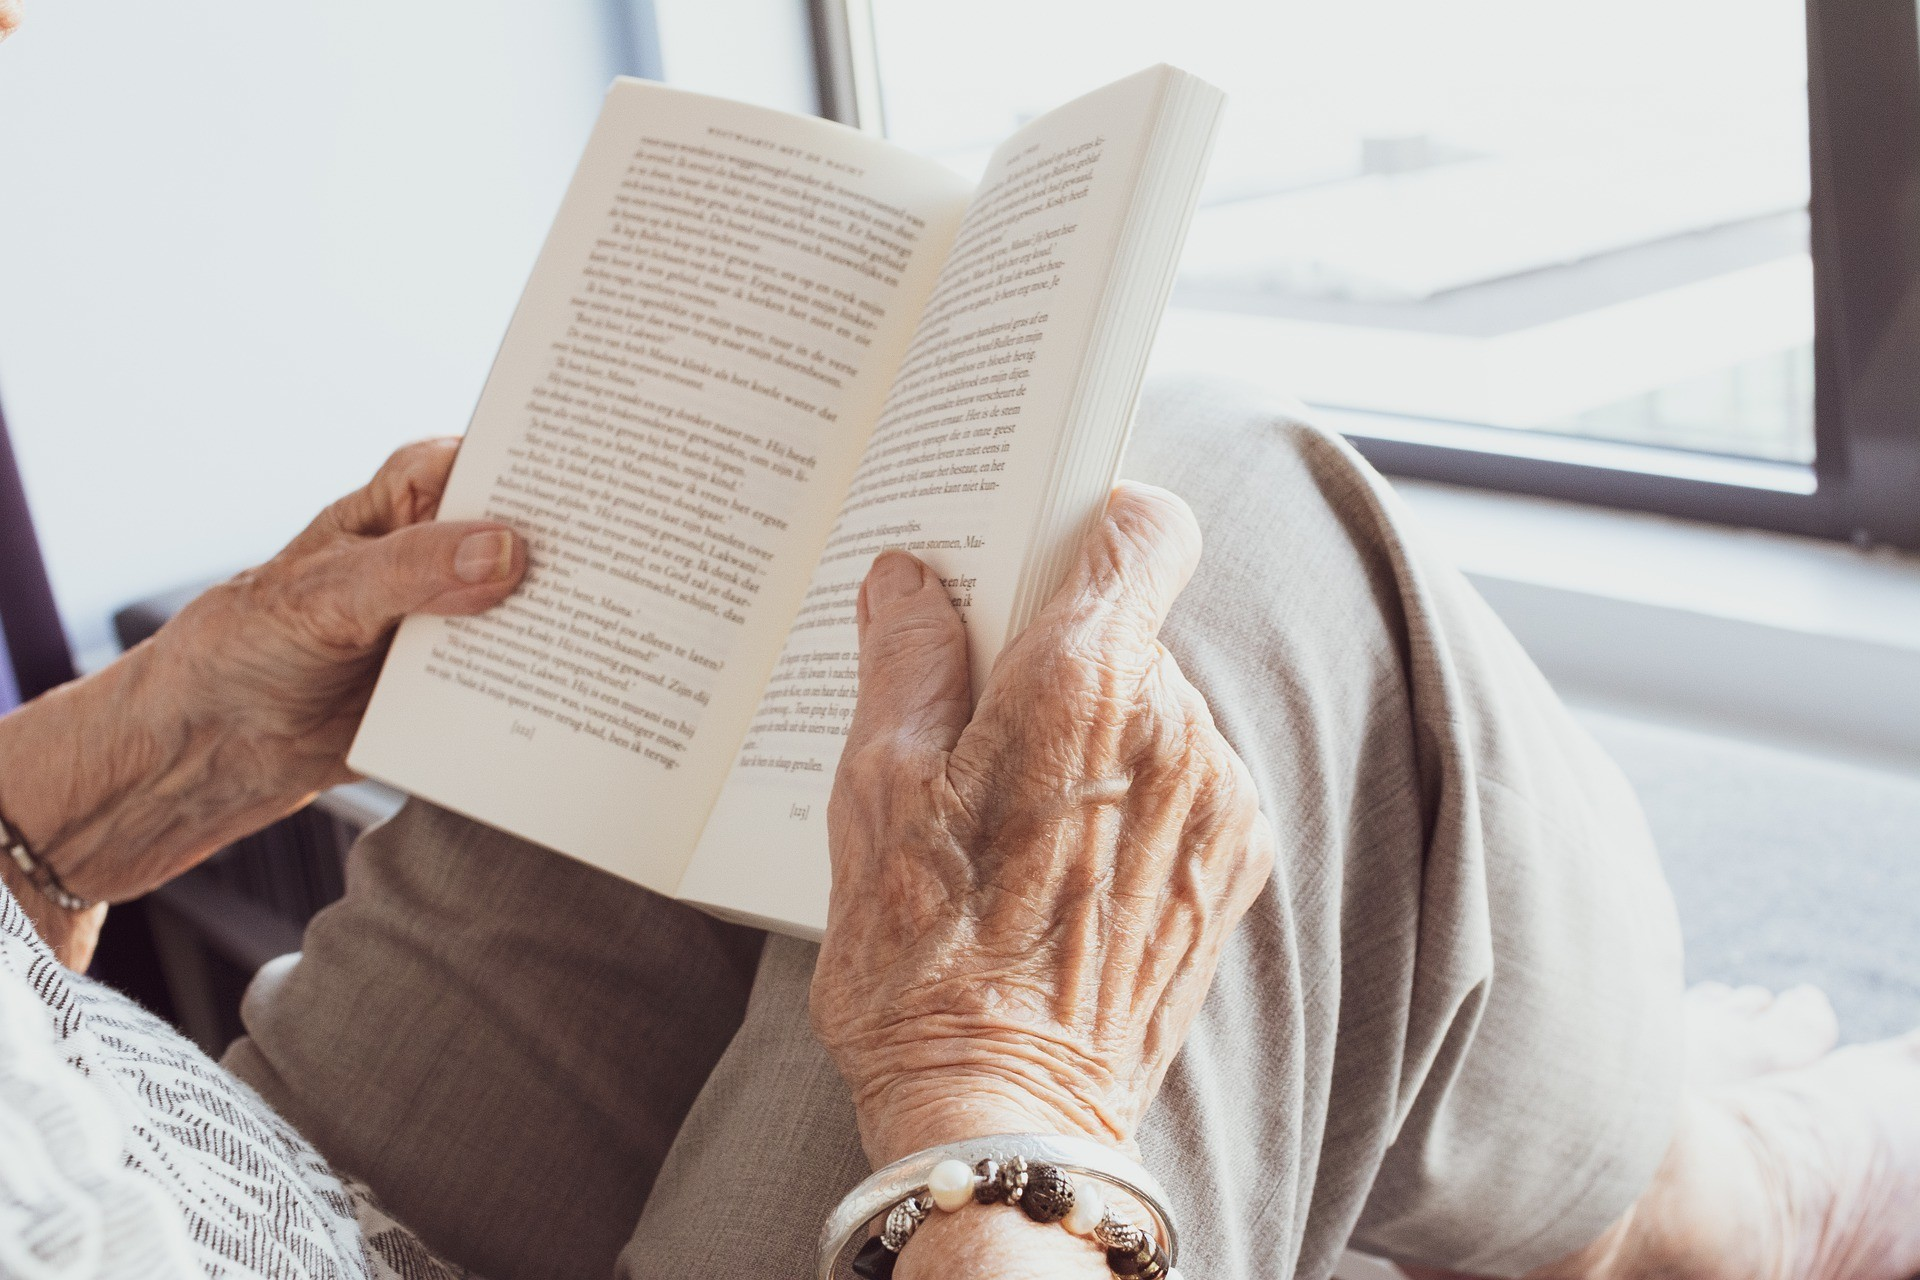 staying mentally engaged, like this older person here who is reading a book, is one of the Okinawan tips for a long life